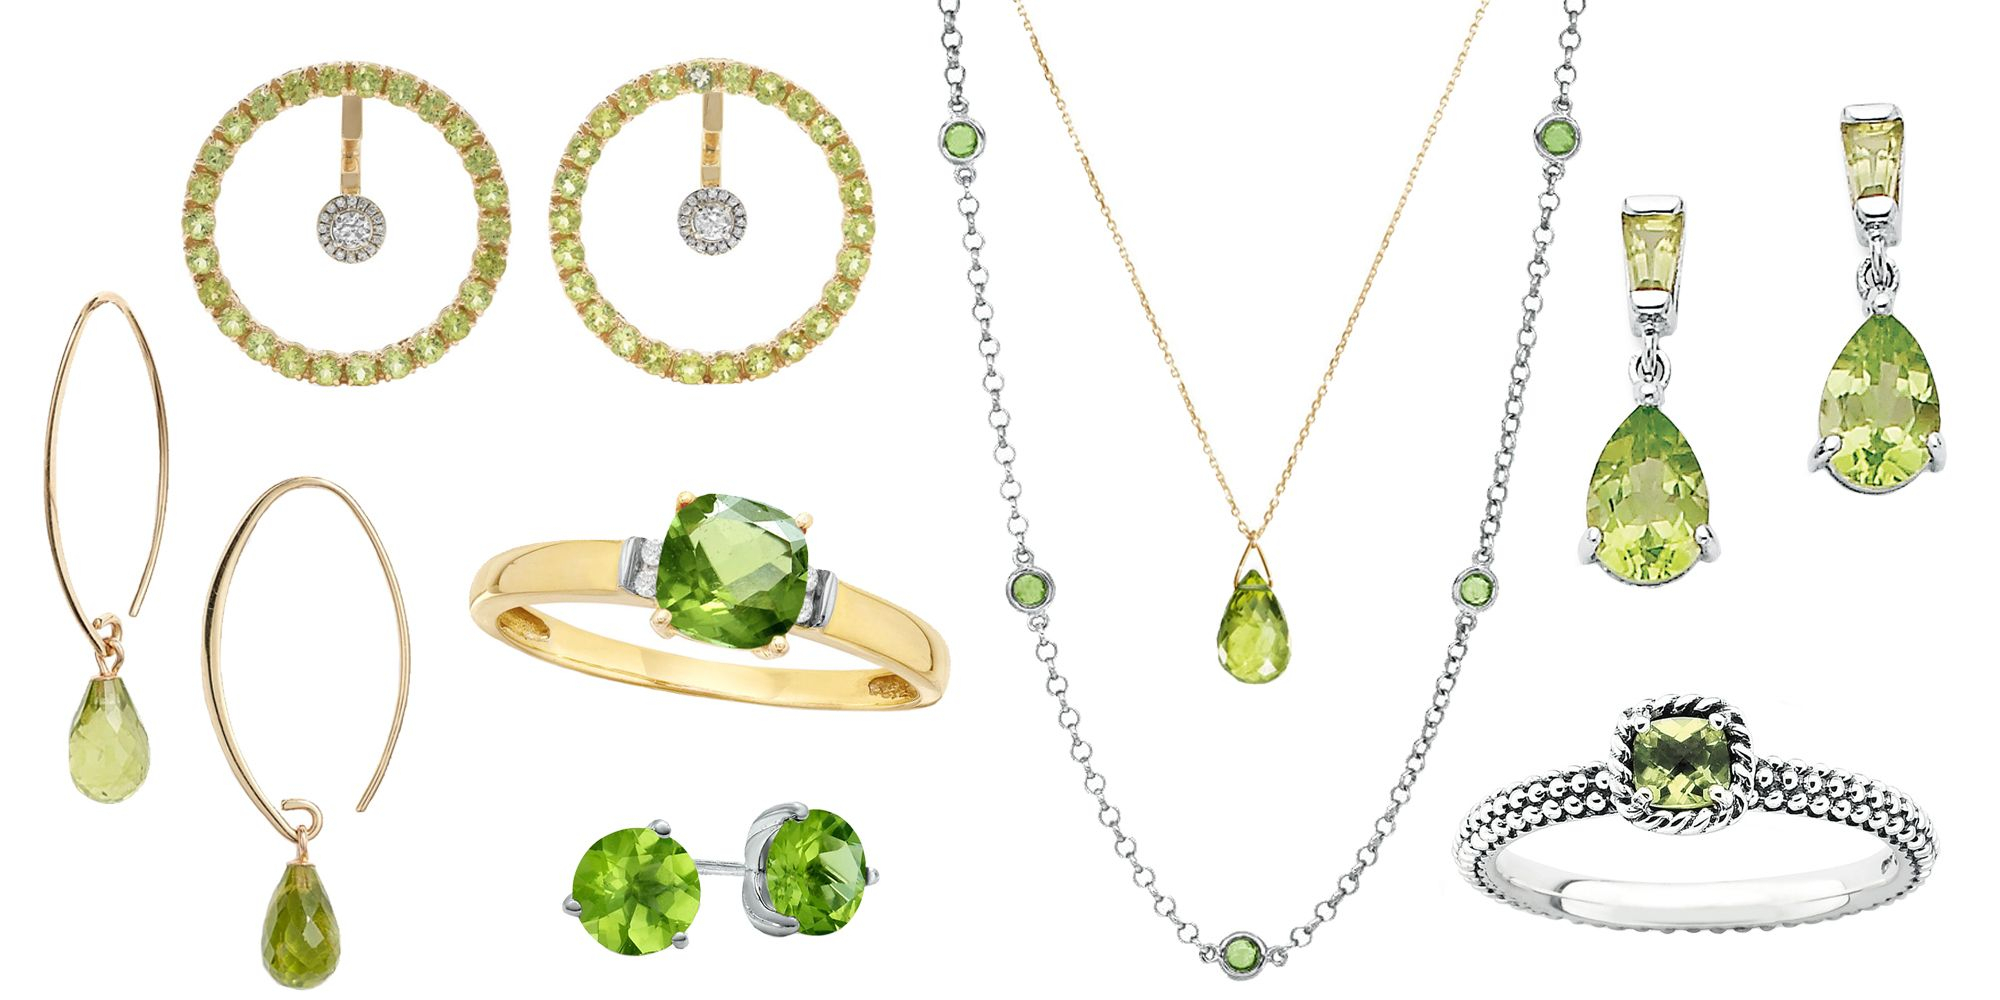 The Best Birthstone Jewelry To Gift For August Birthdays In Recent Royal Green Crystal May Droplet Pendant Necklaces (View 22 of 25)